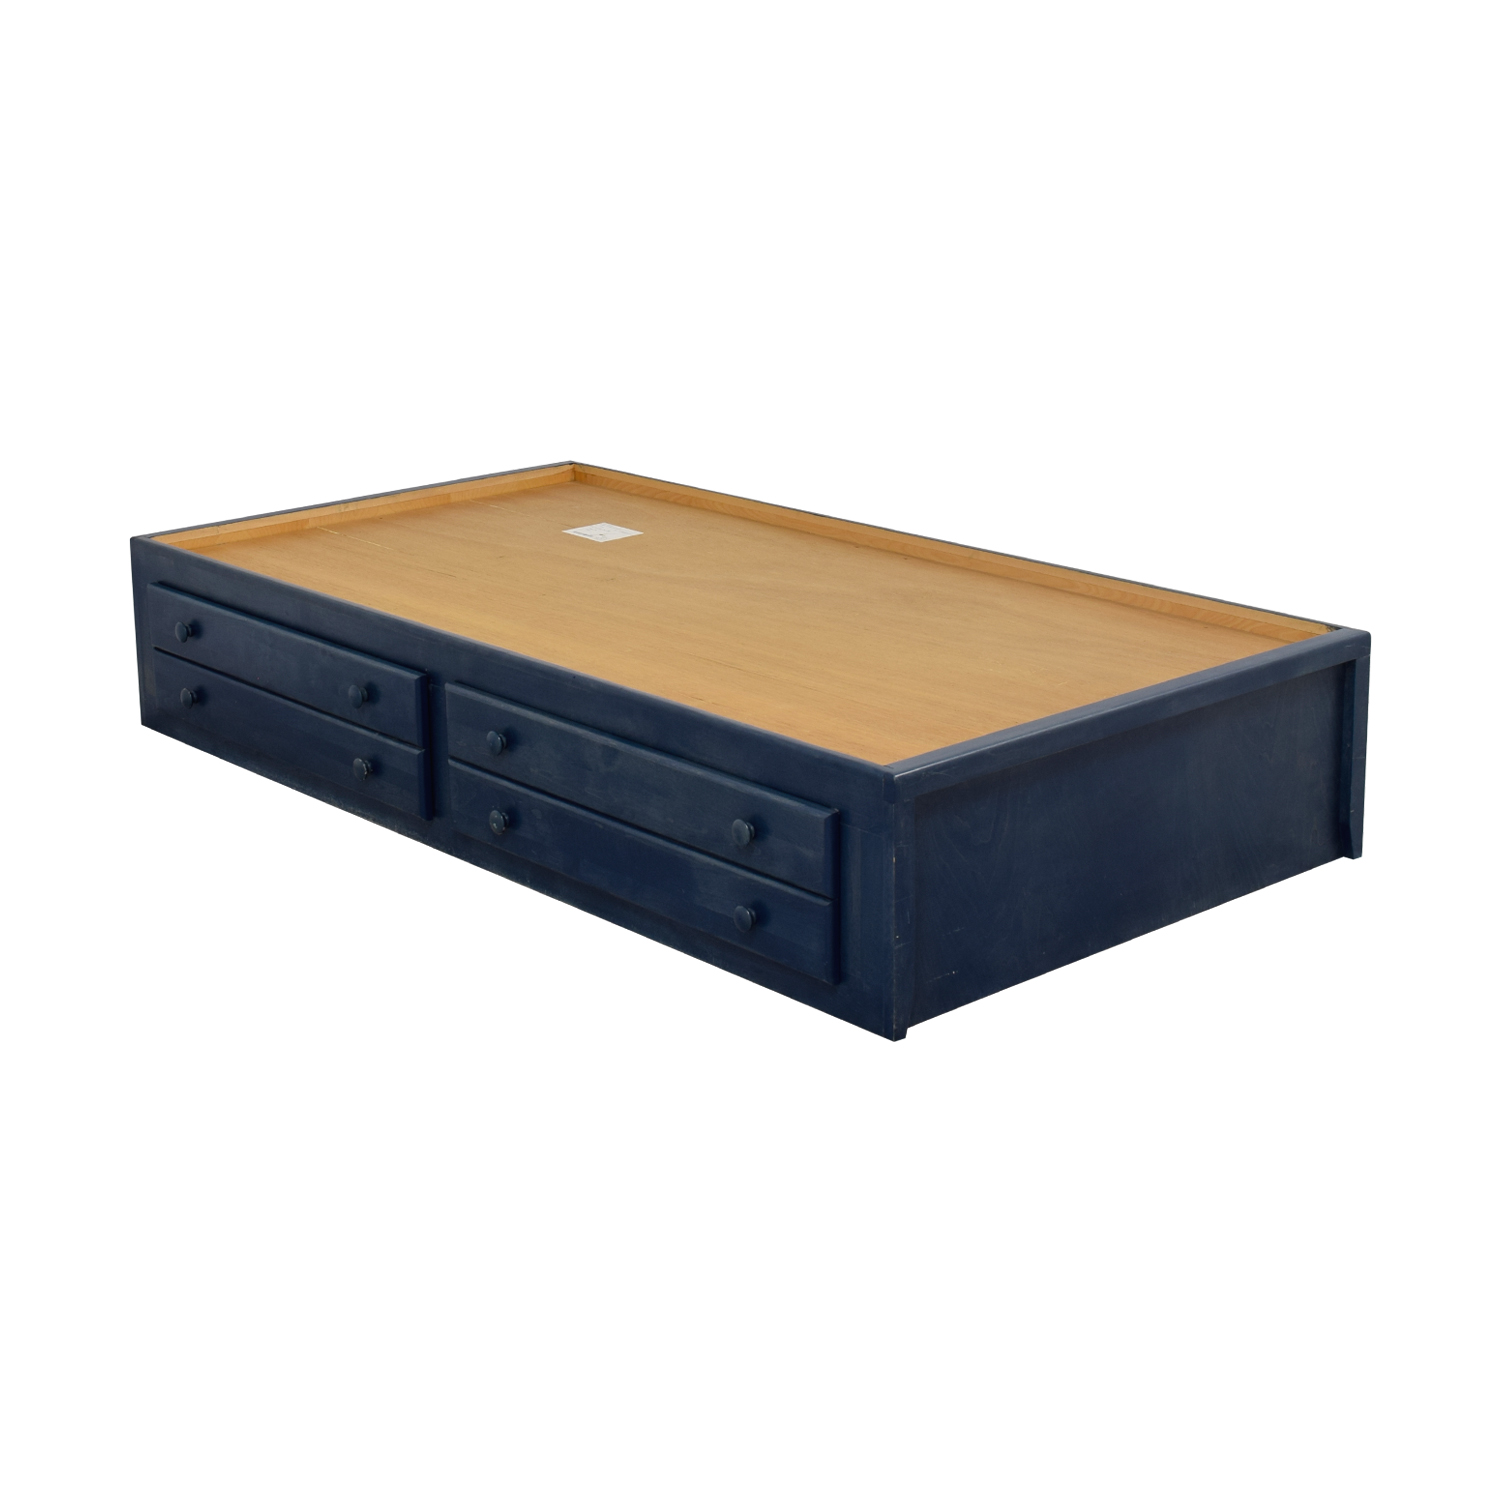 77 Off Pottery Barn Pottery Barn Slate Blue Twin Captain S Bed Frame With Storage Drawers Beds